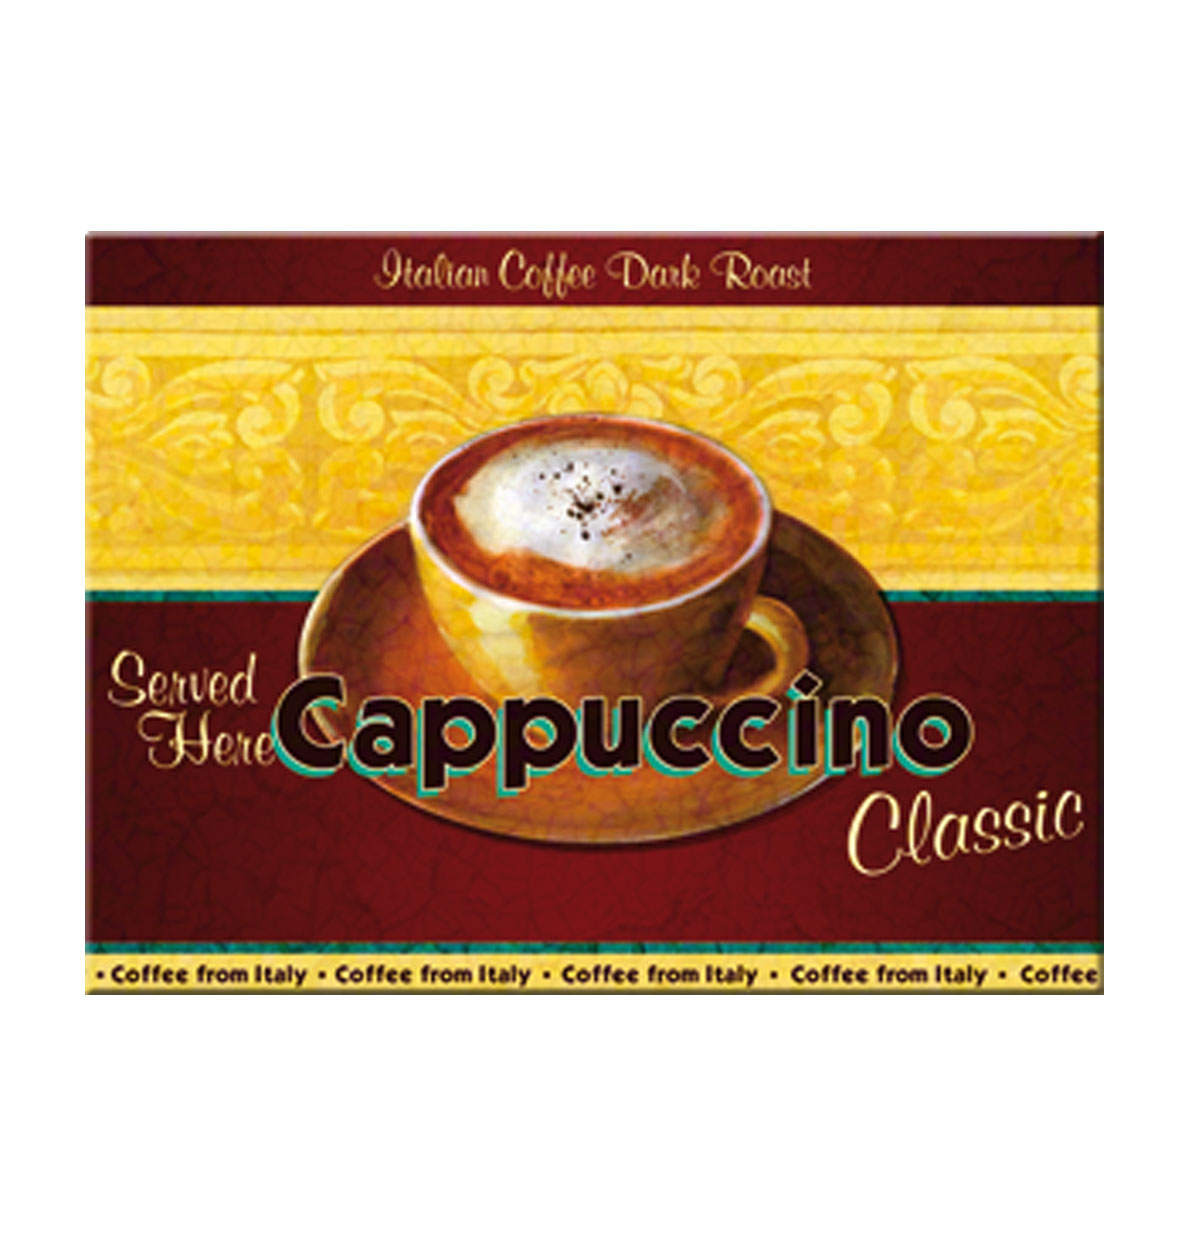 Cappuccino Classic Served Here Magneet